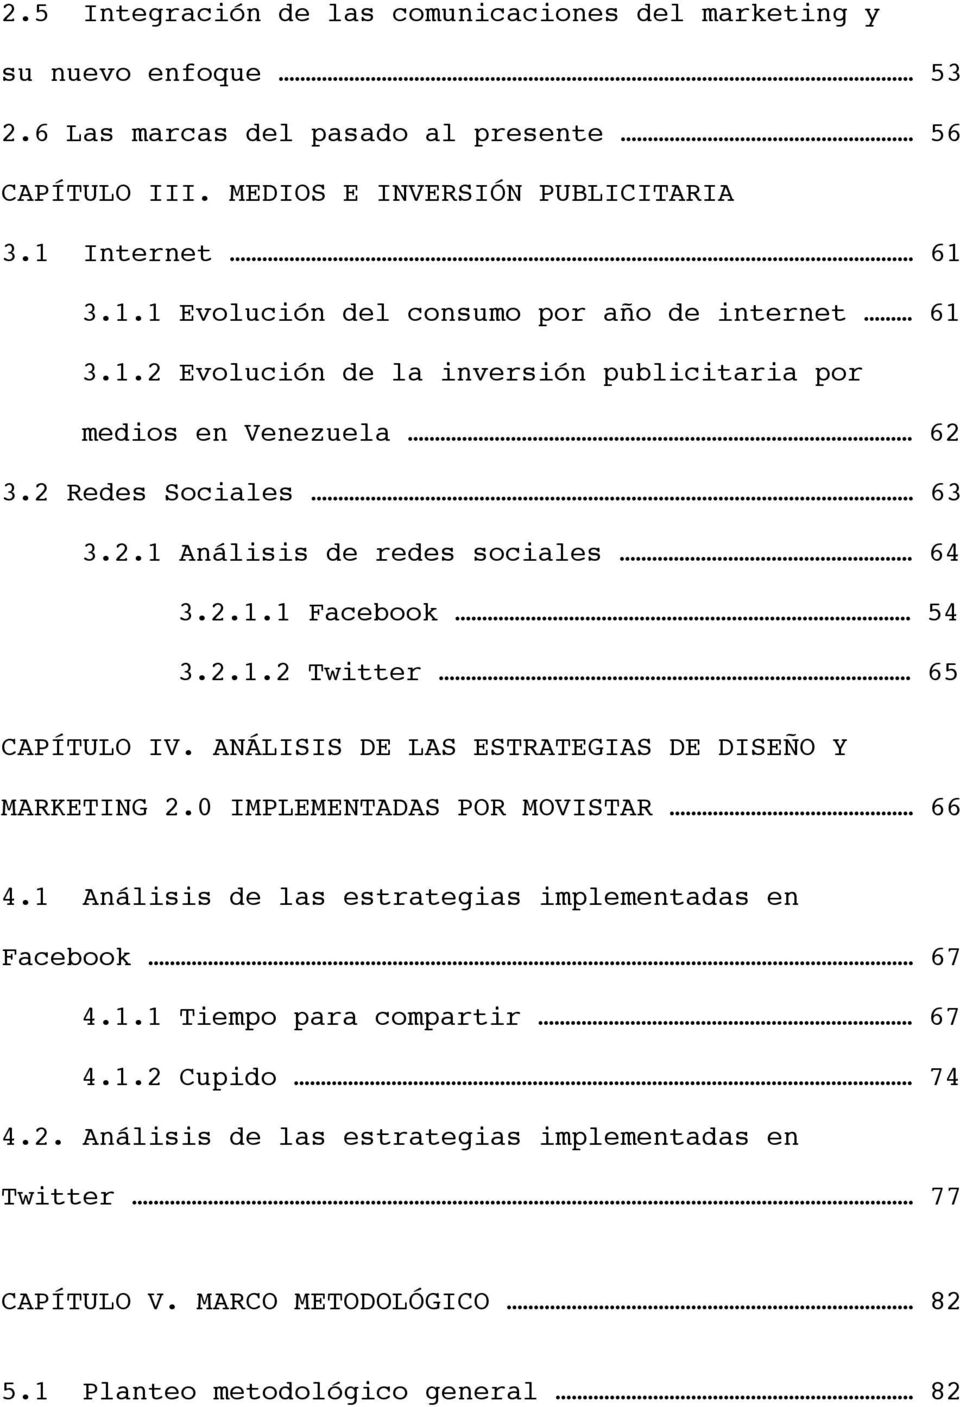 2.1.1 Facebook 54 3.2.1.2 Twitter 65 CAPÍTULO IV. ANÁLISIS DE LAS ESTRATEGIAS DE DISEÑO Y MARKETING 2.0 IMPLEMENTADAS POR MOVISTAR 66 4.